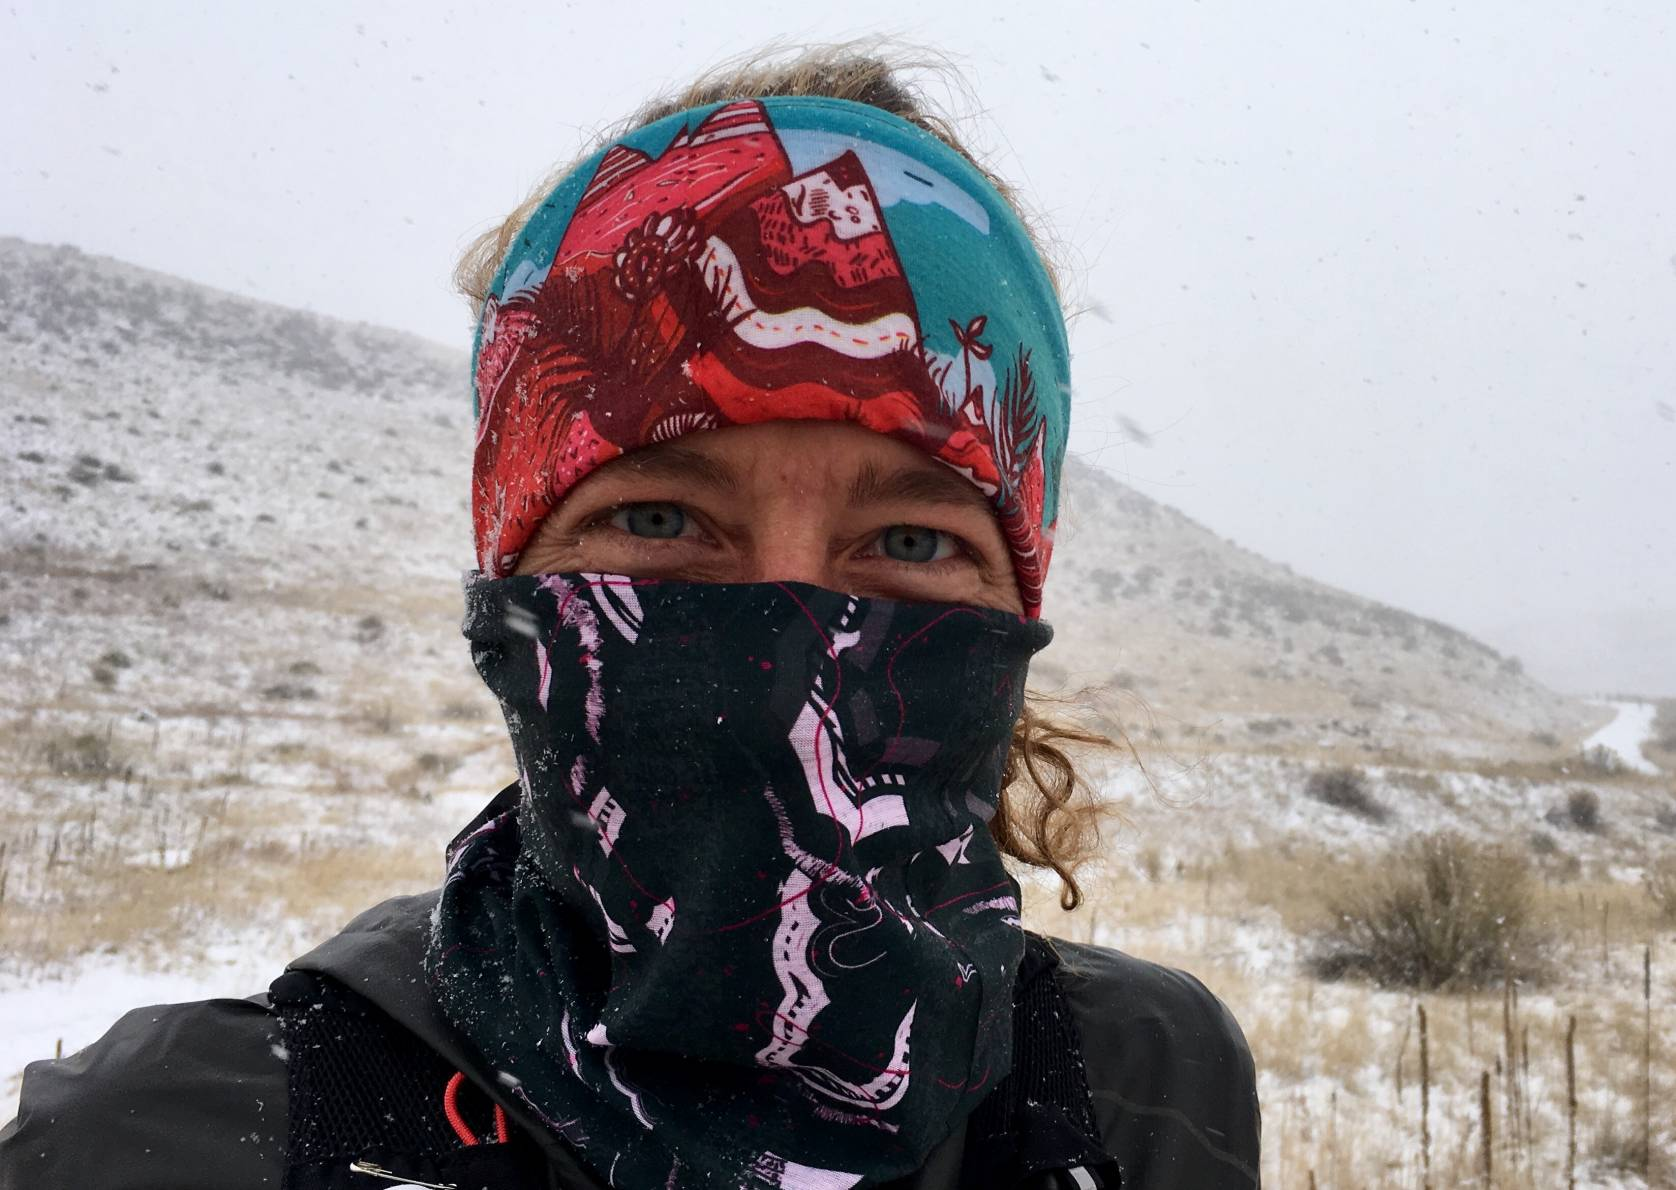 Ultrarunner Courtney Dawaulter - Winter Running Gear